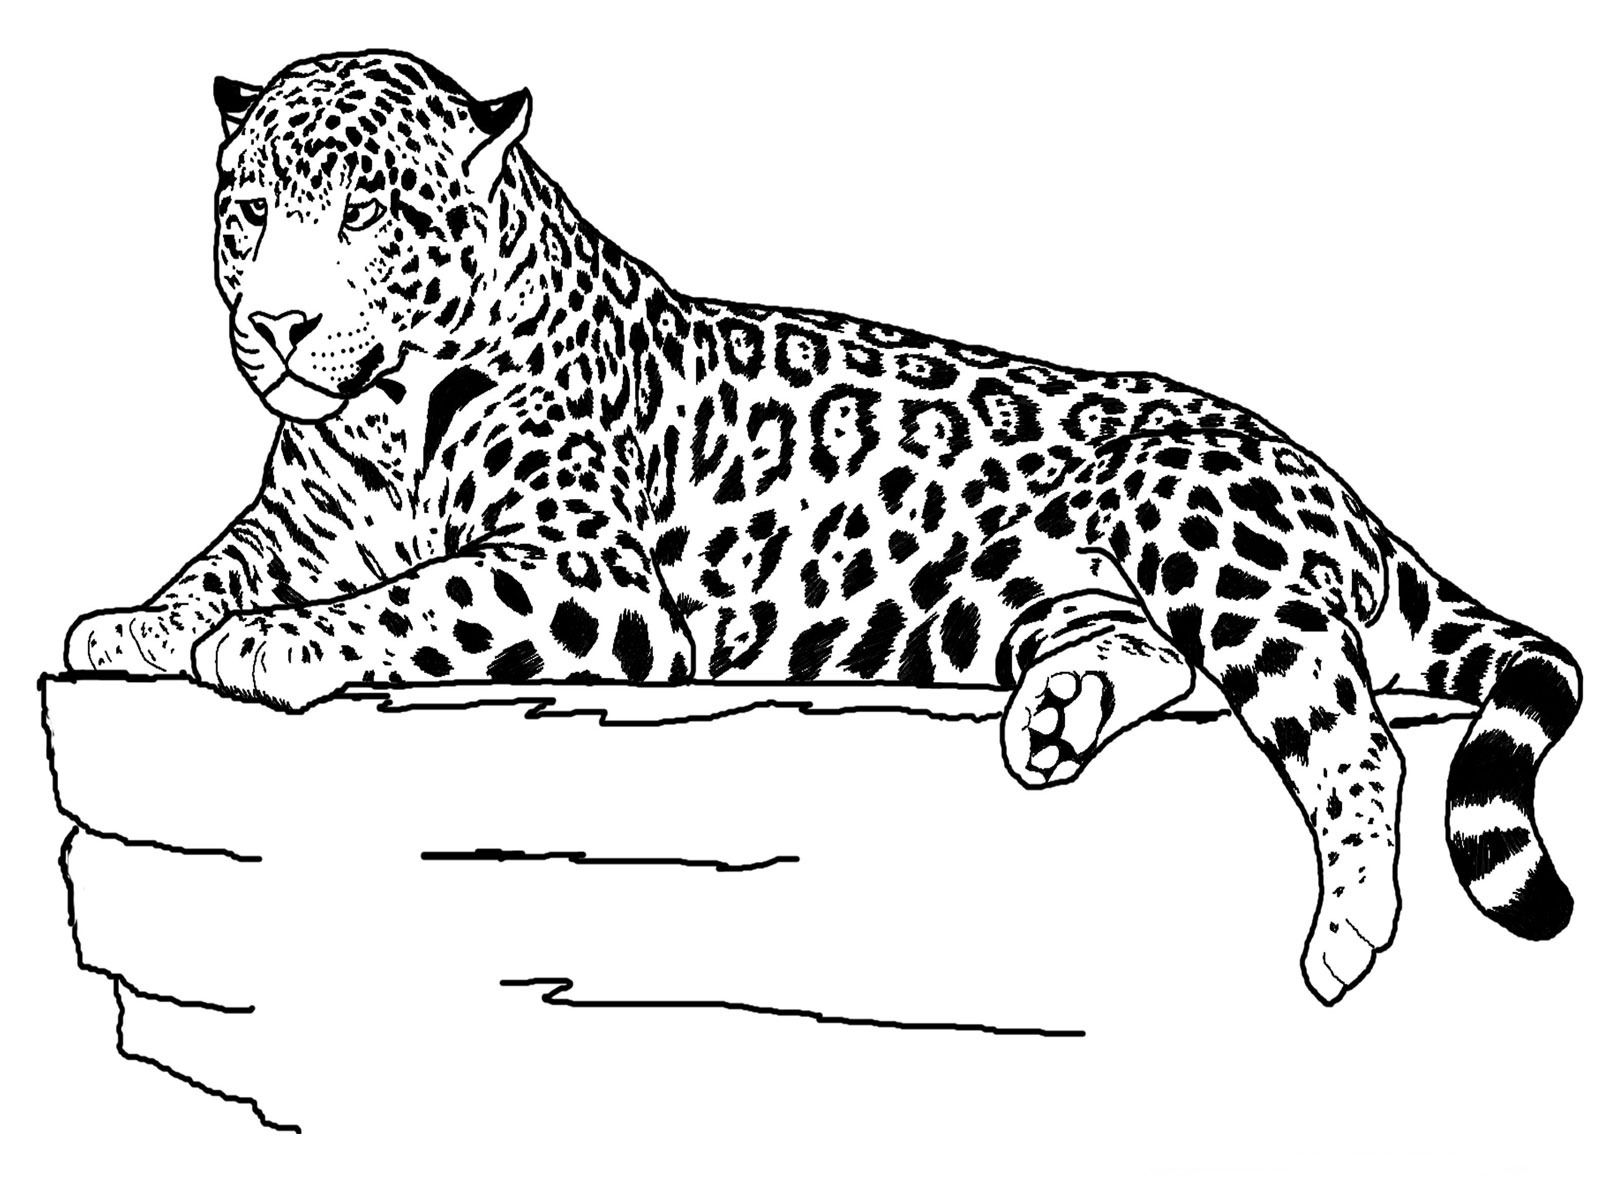 free printable cheetah coloring pages for kids - Free Animal Coloring Pages